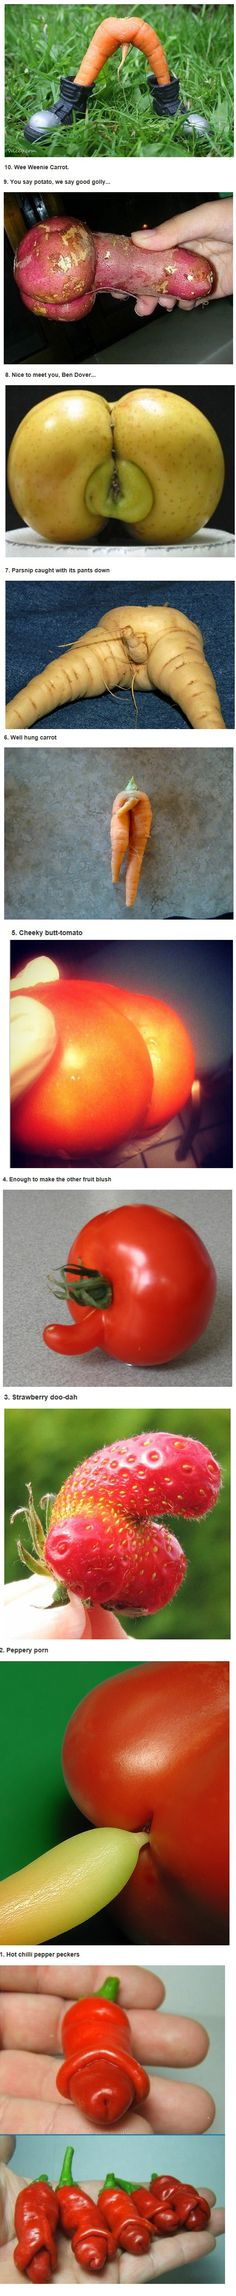 10 Naughtiest Vegetables on Earth on http://seriouslyforreal.com/funny/10-naughtiest-vegetables-on-earth/